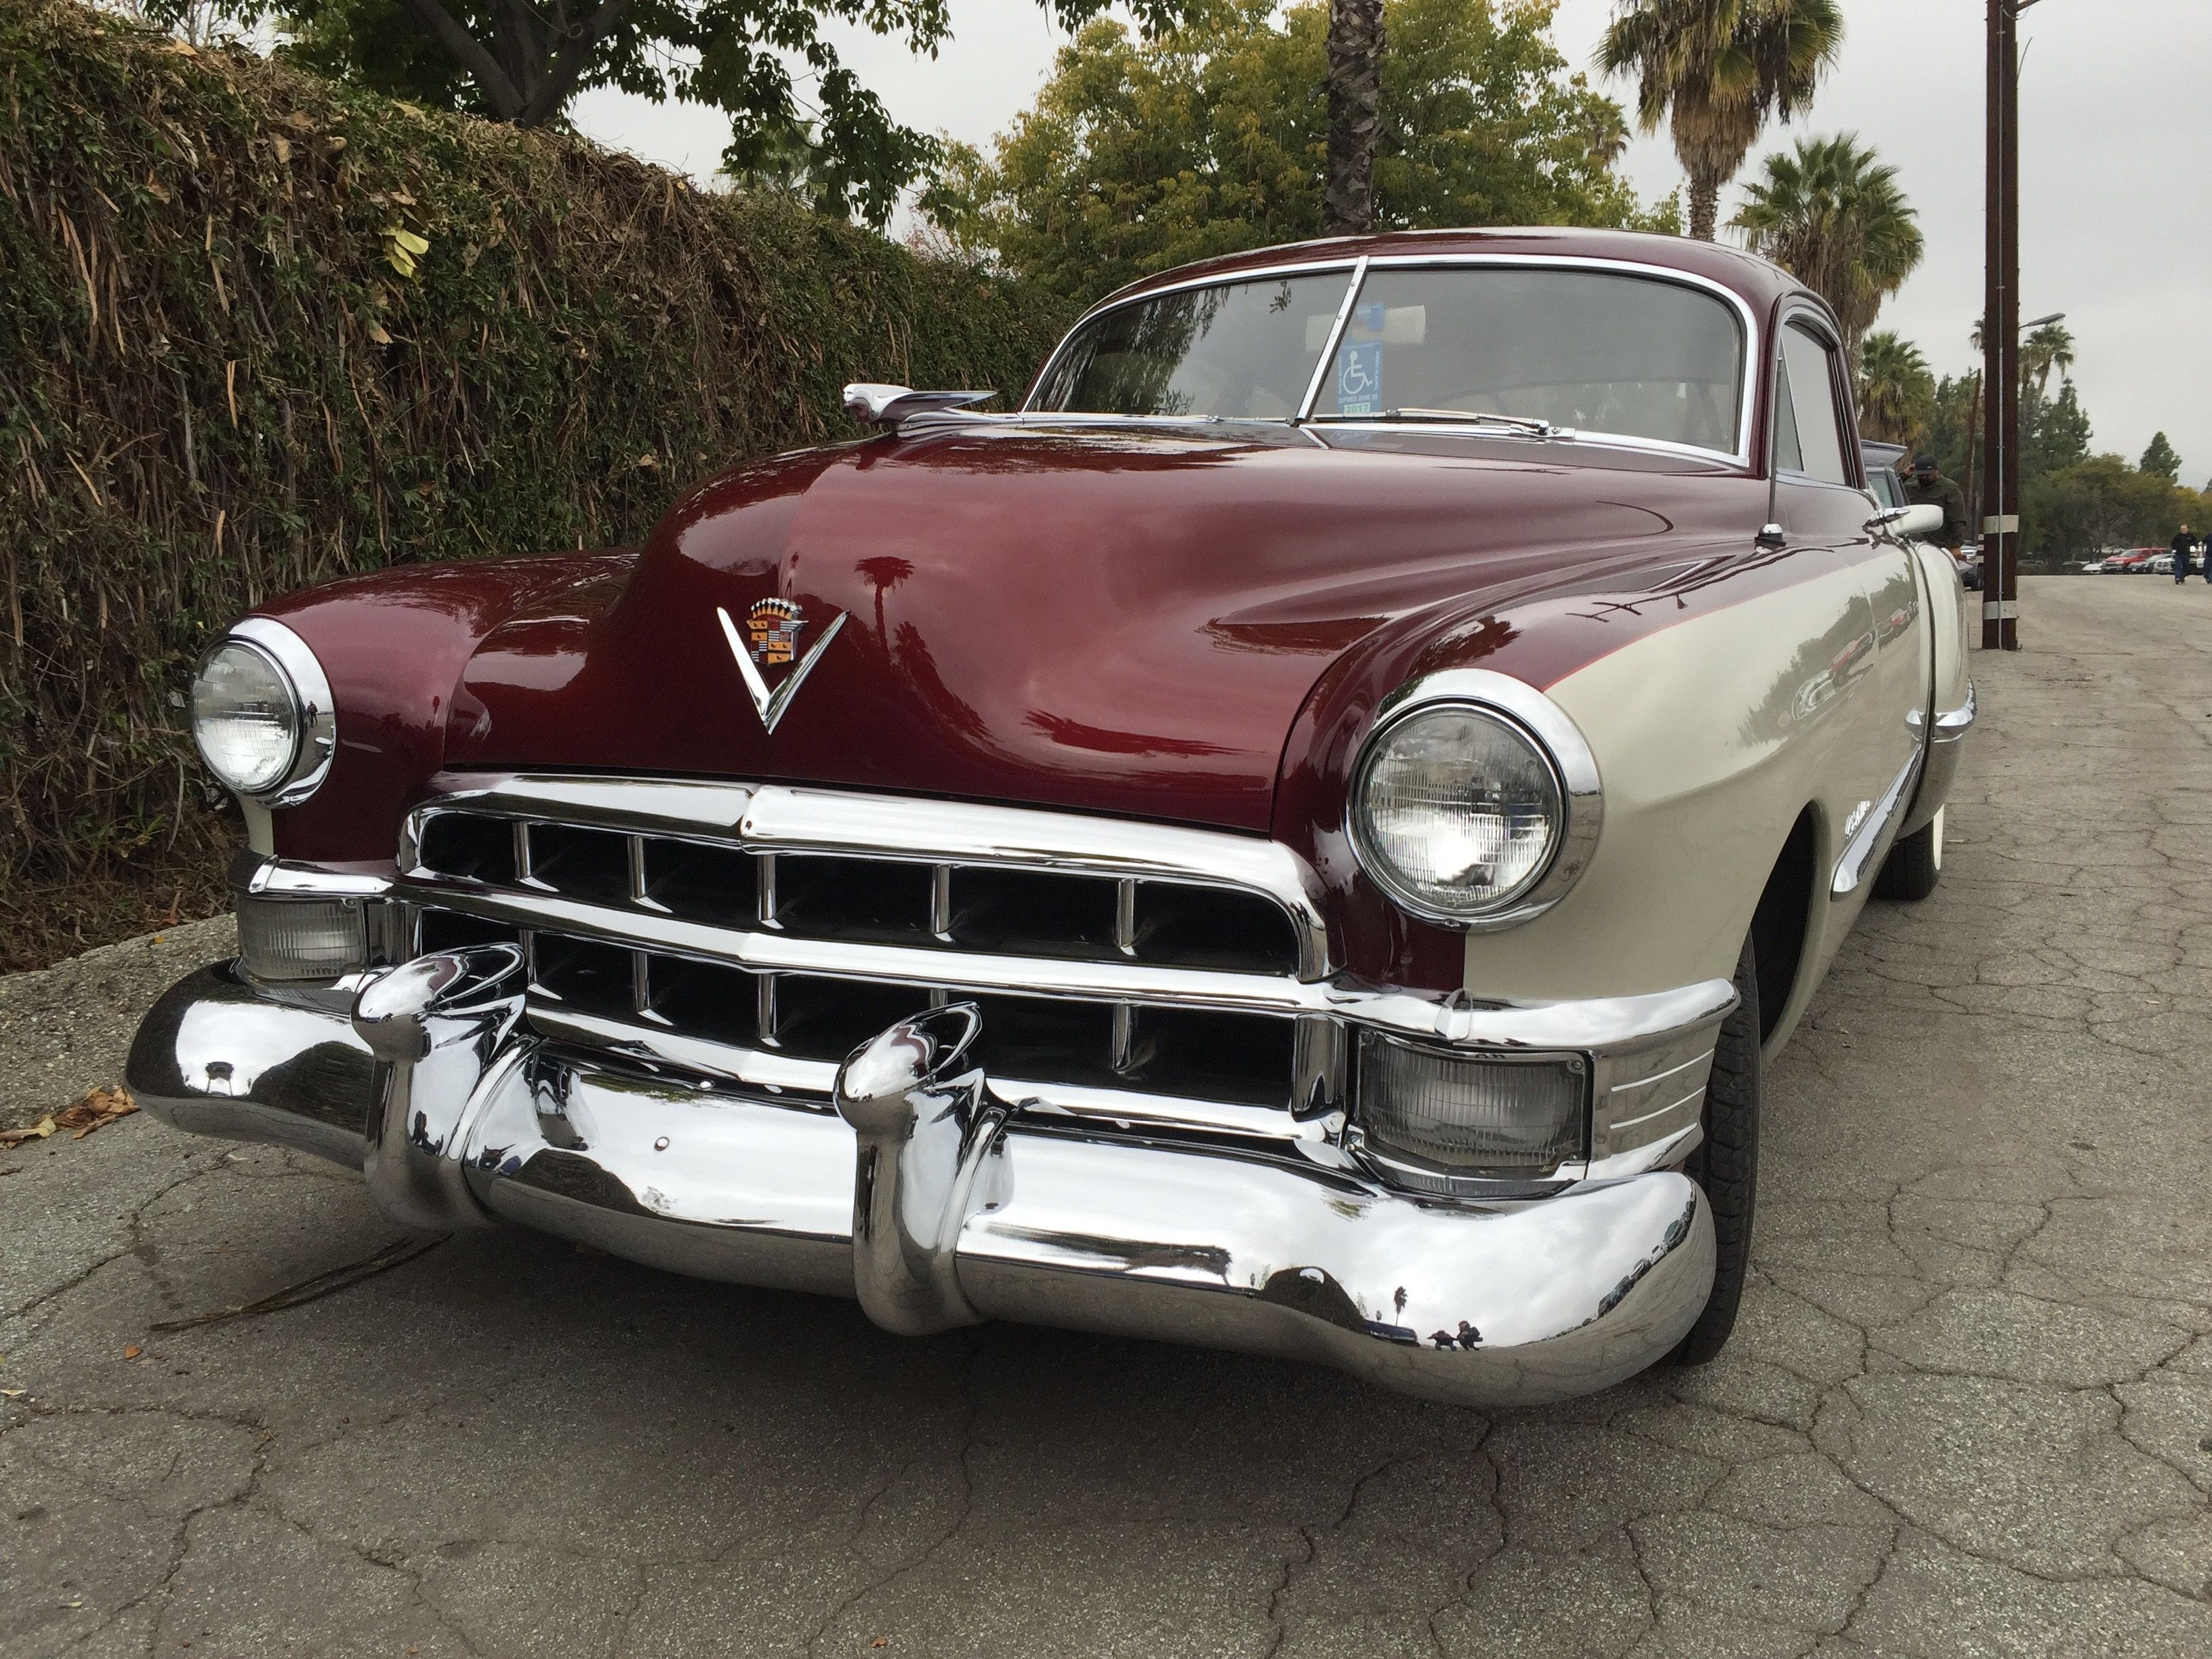 1949 cadillac automobile restoration parts and accessories restoration parts for most cars trucks from the through the carpet kits for almost all cars and trucks from the late to the present sciox Images